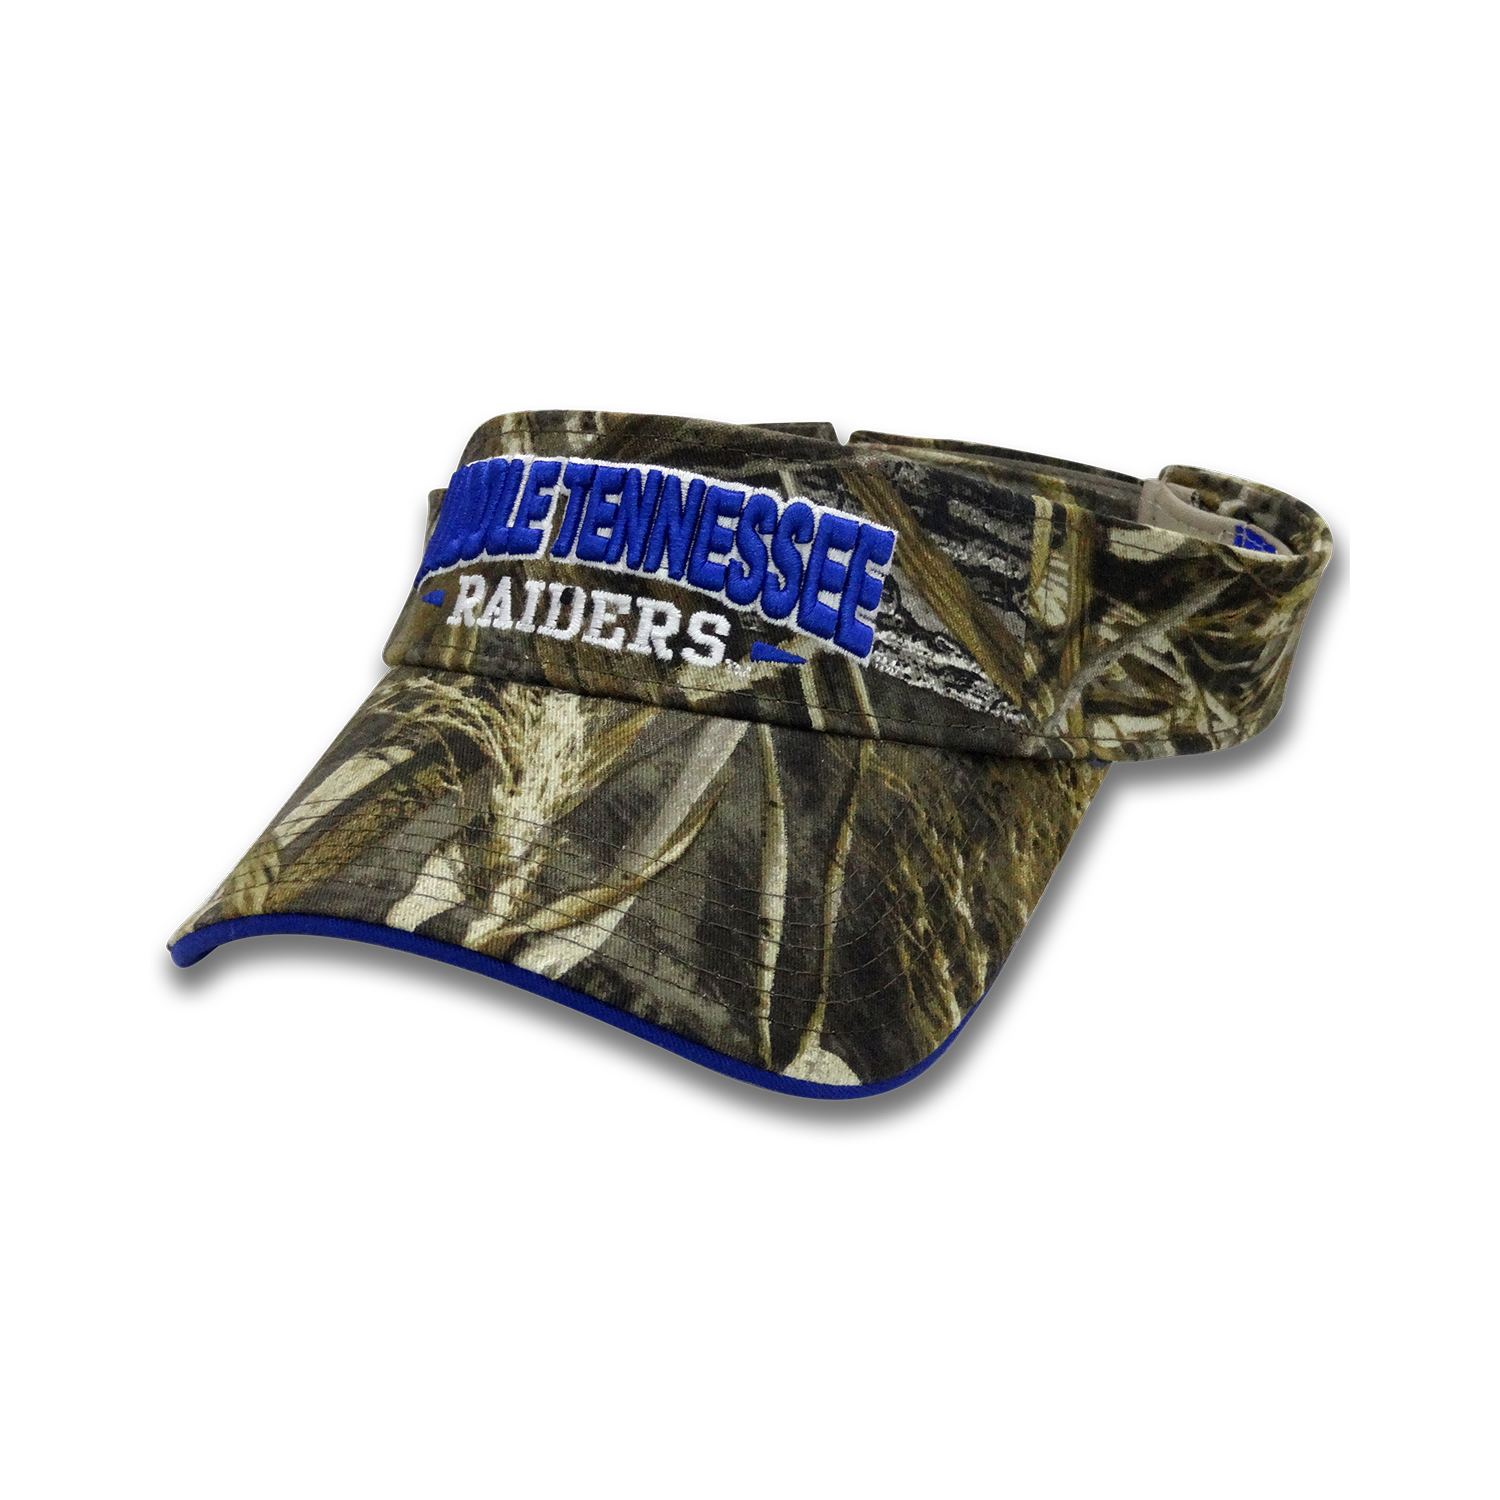 Middle Tennessee Raiders Camo Visor